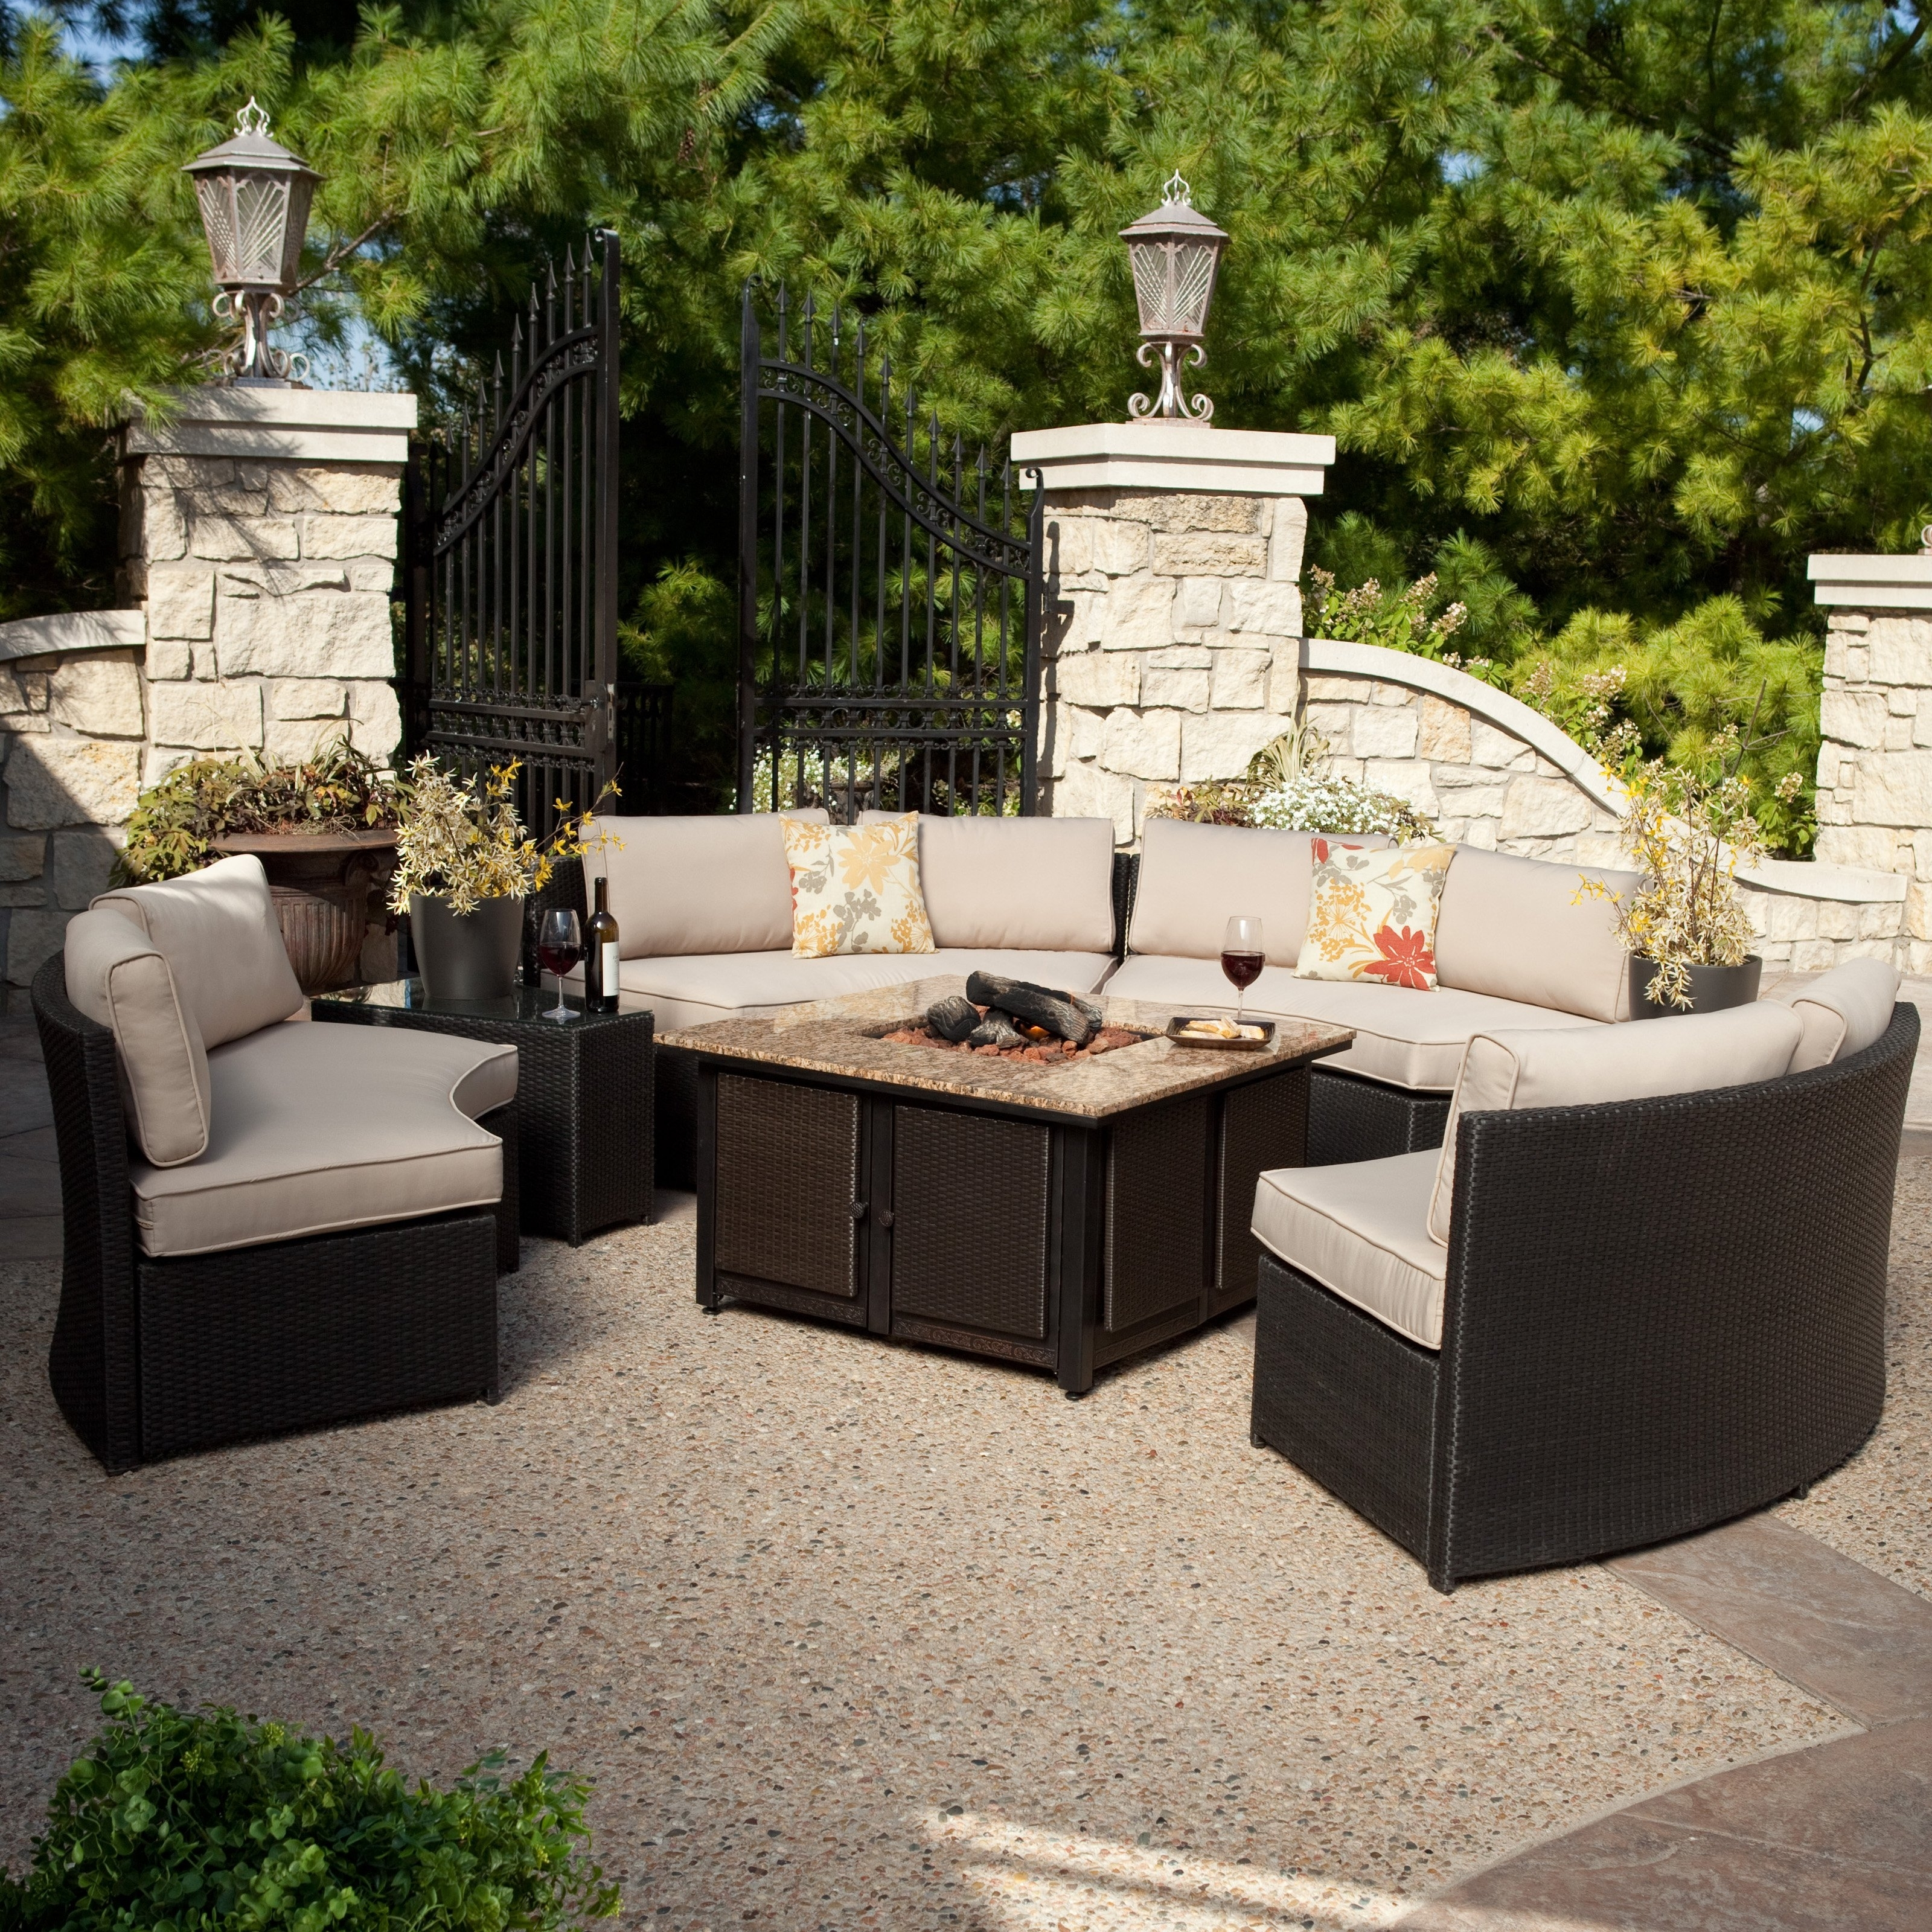 Current Revisited Fire Pit Conversation Sets Shrewd Patio Furniture Decor Intended For Patio Furniture Conversation Sets With Fire Pit (View 3 of 15)